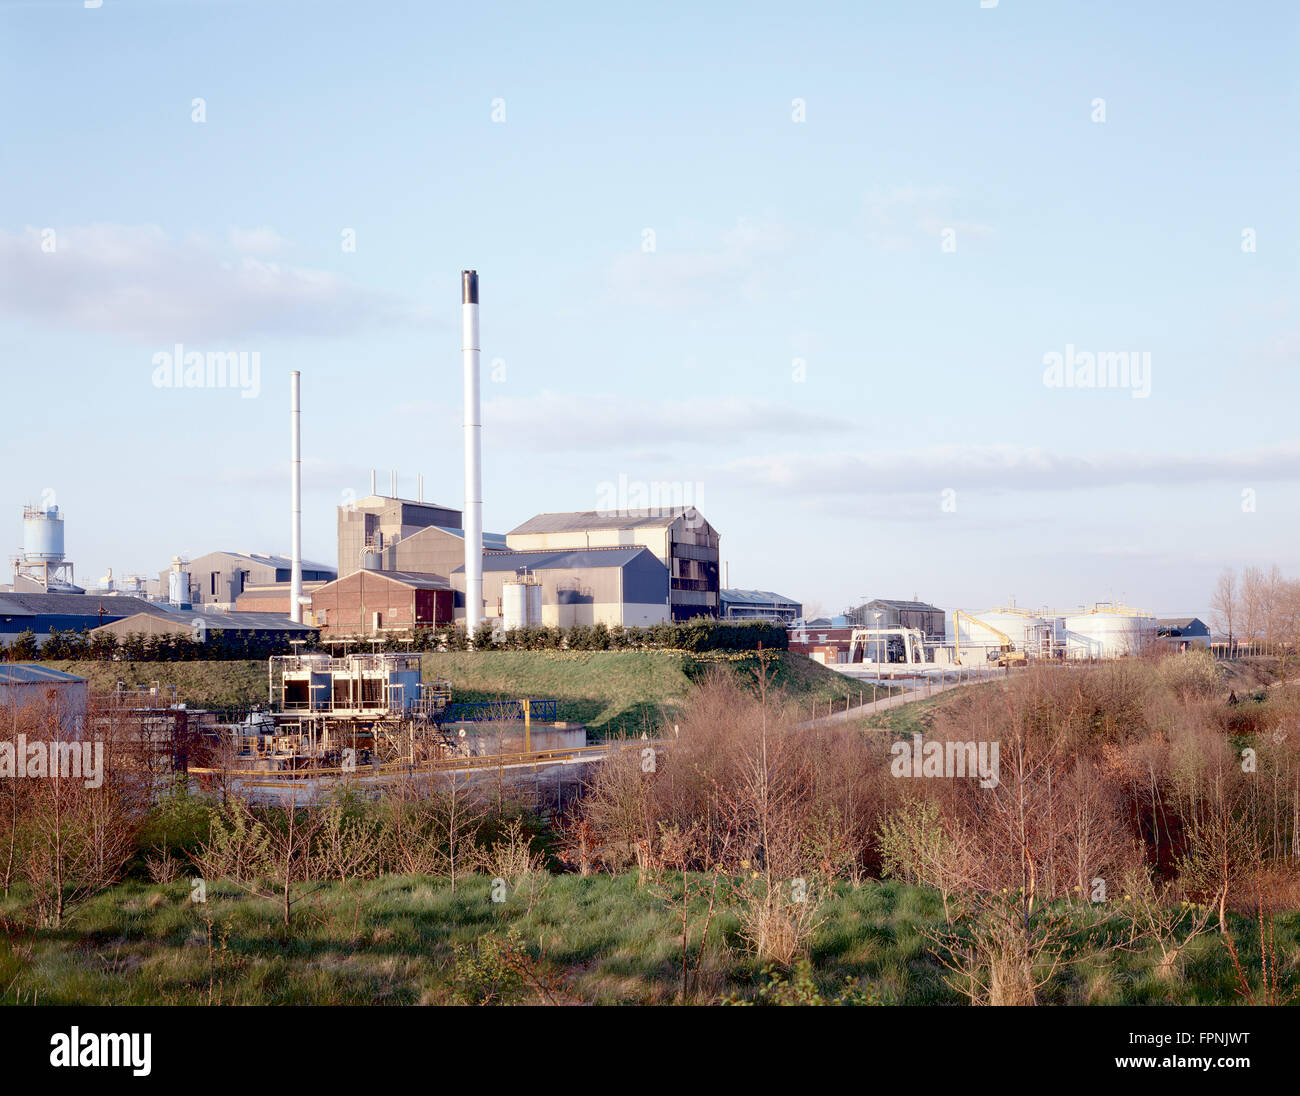 Small chemical plant, Widnes, England. - Stock Image